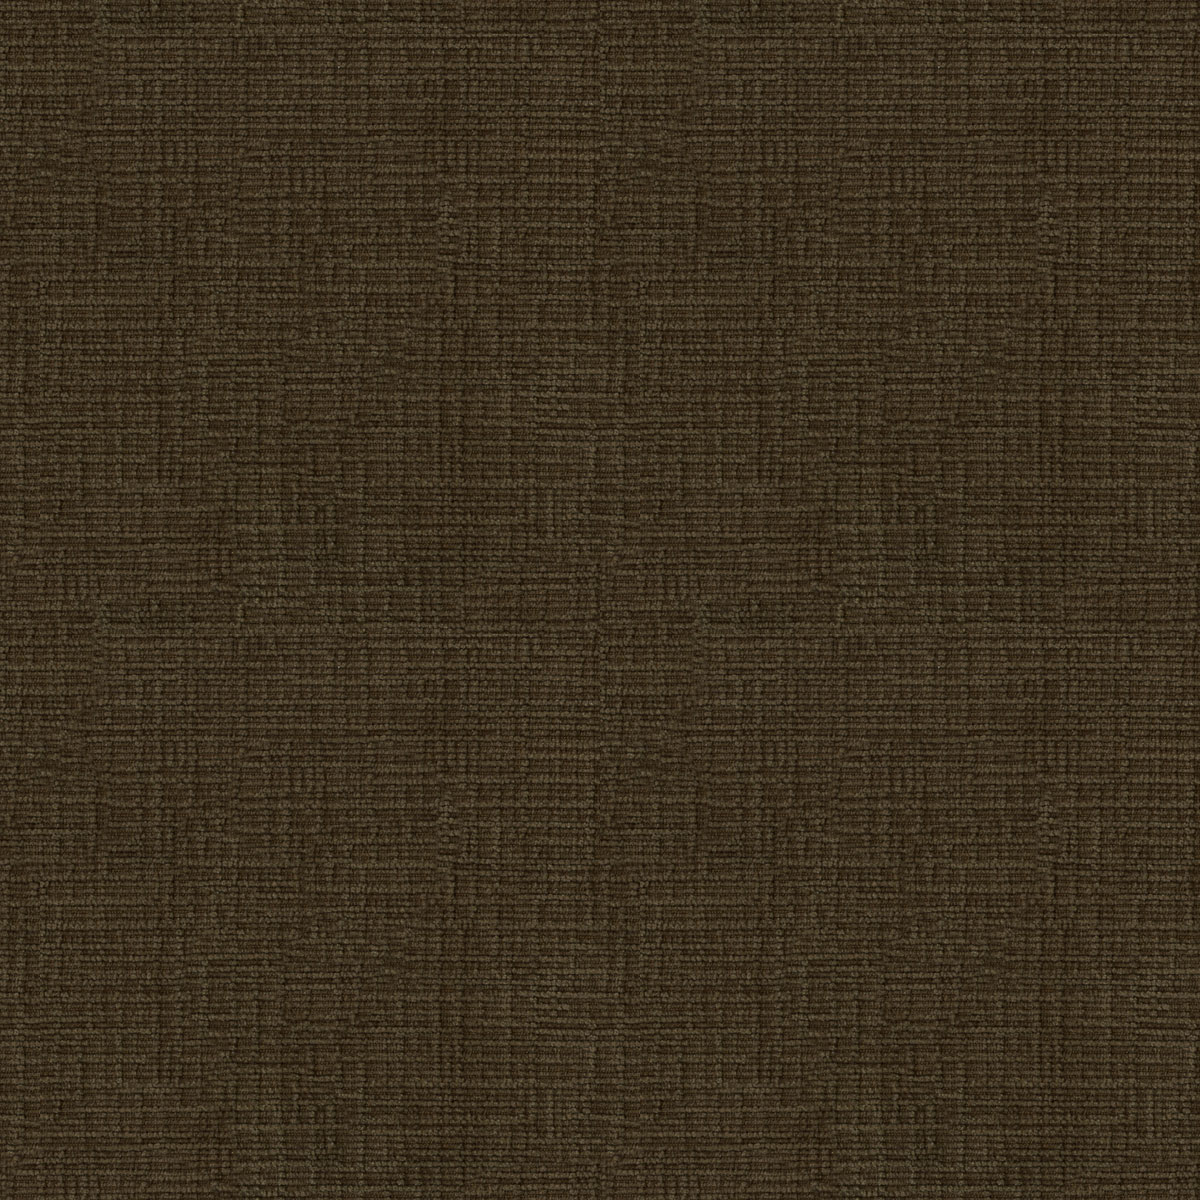 Army Brown Texture Woven Upholstery Fabric